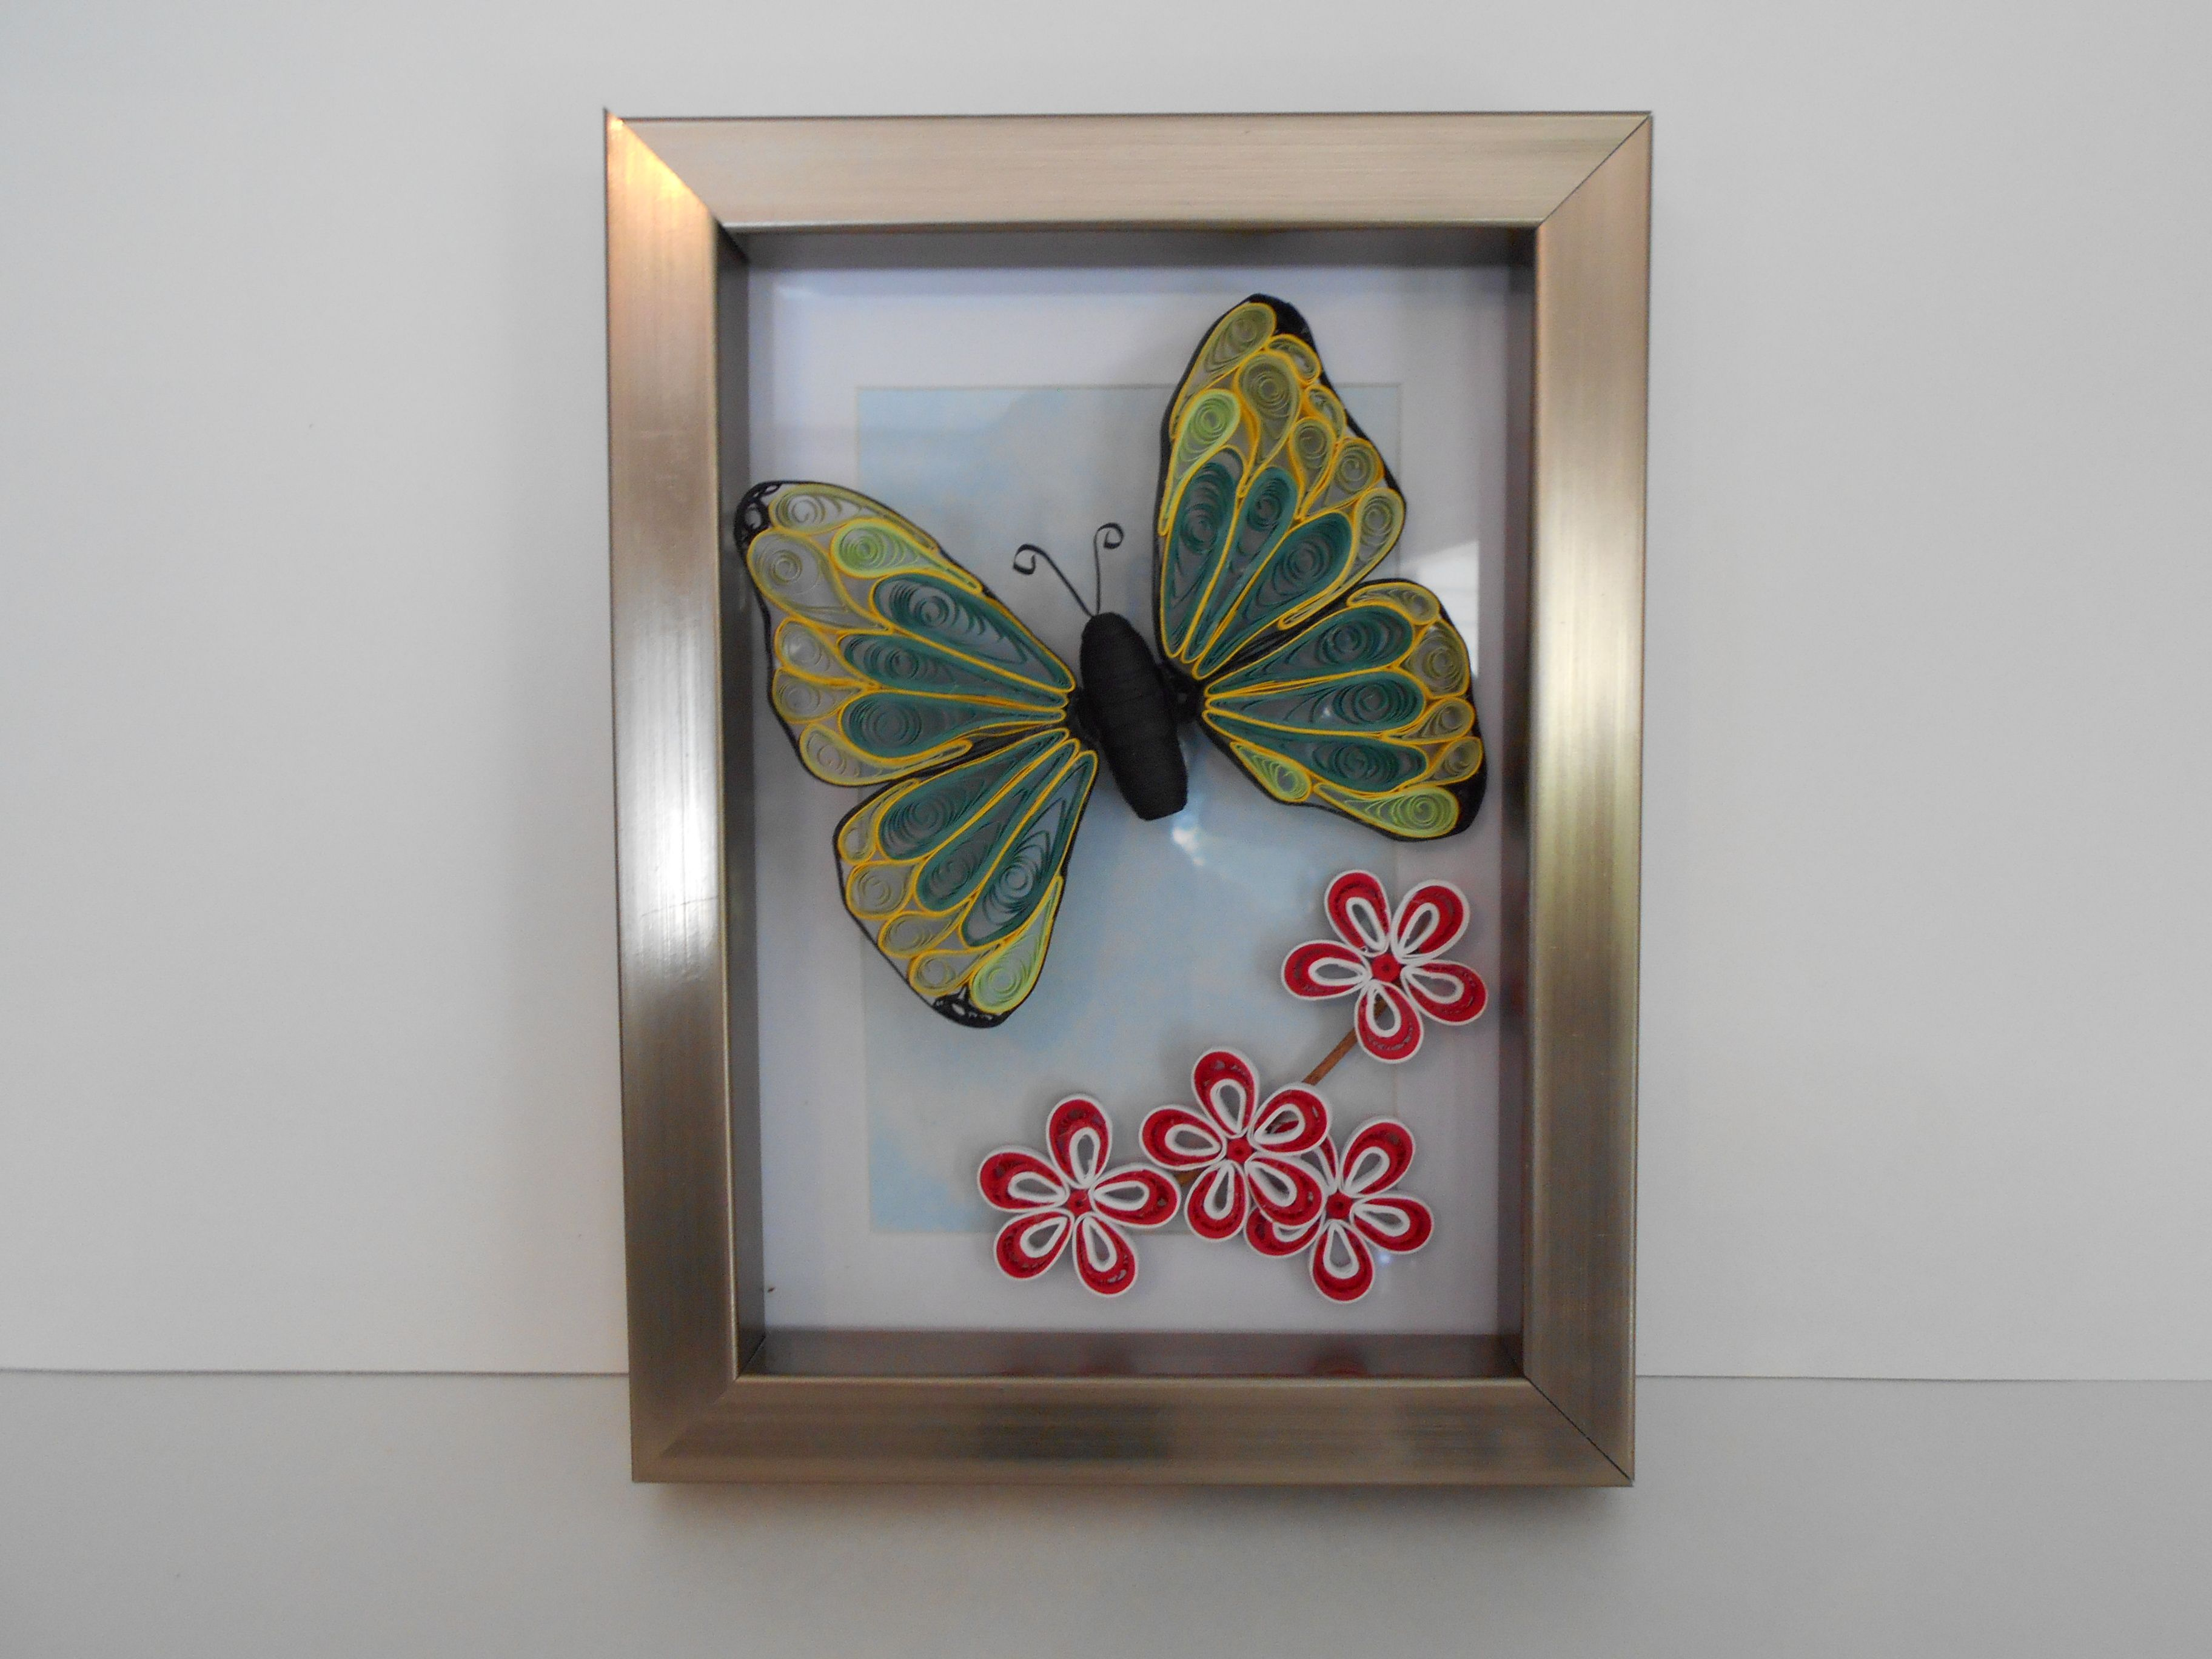 Butterfly flower framed wall hanging for sale on etsy